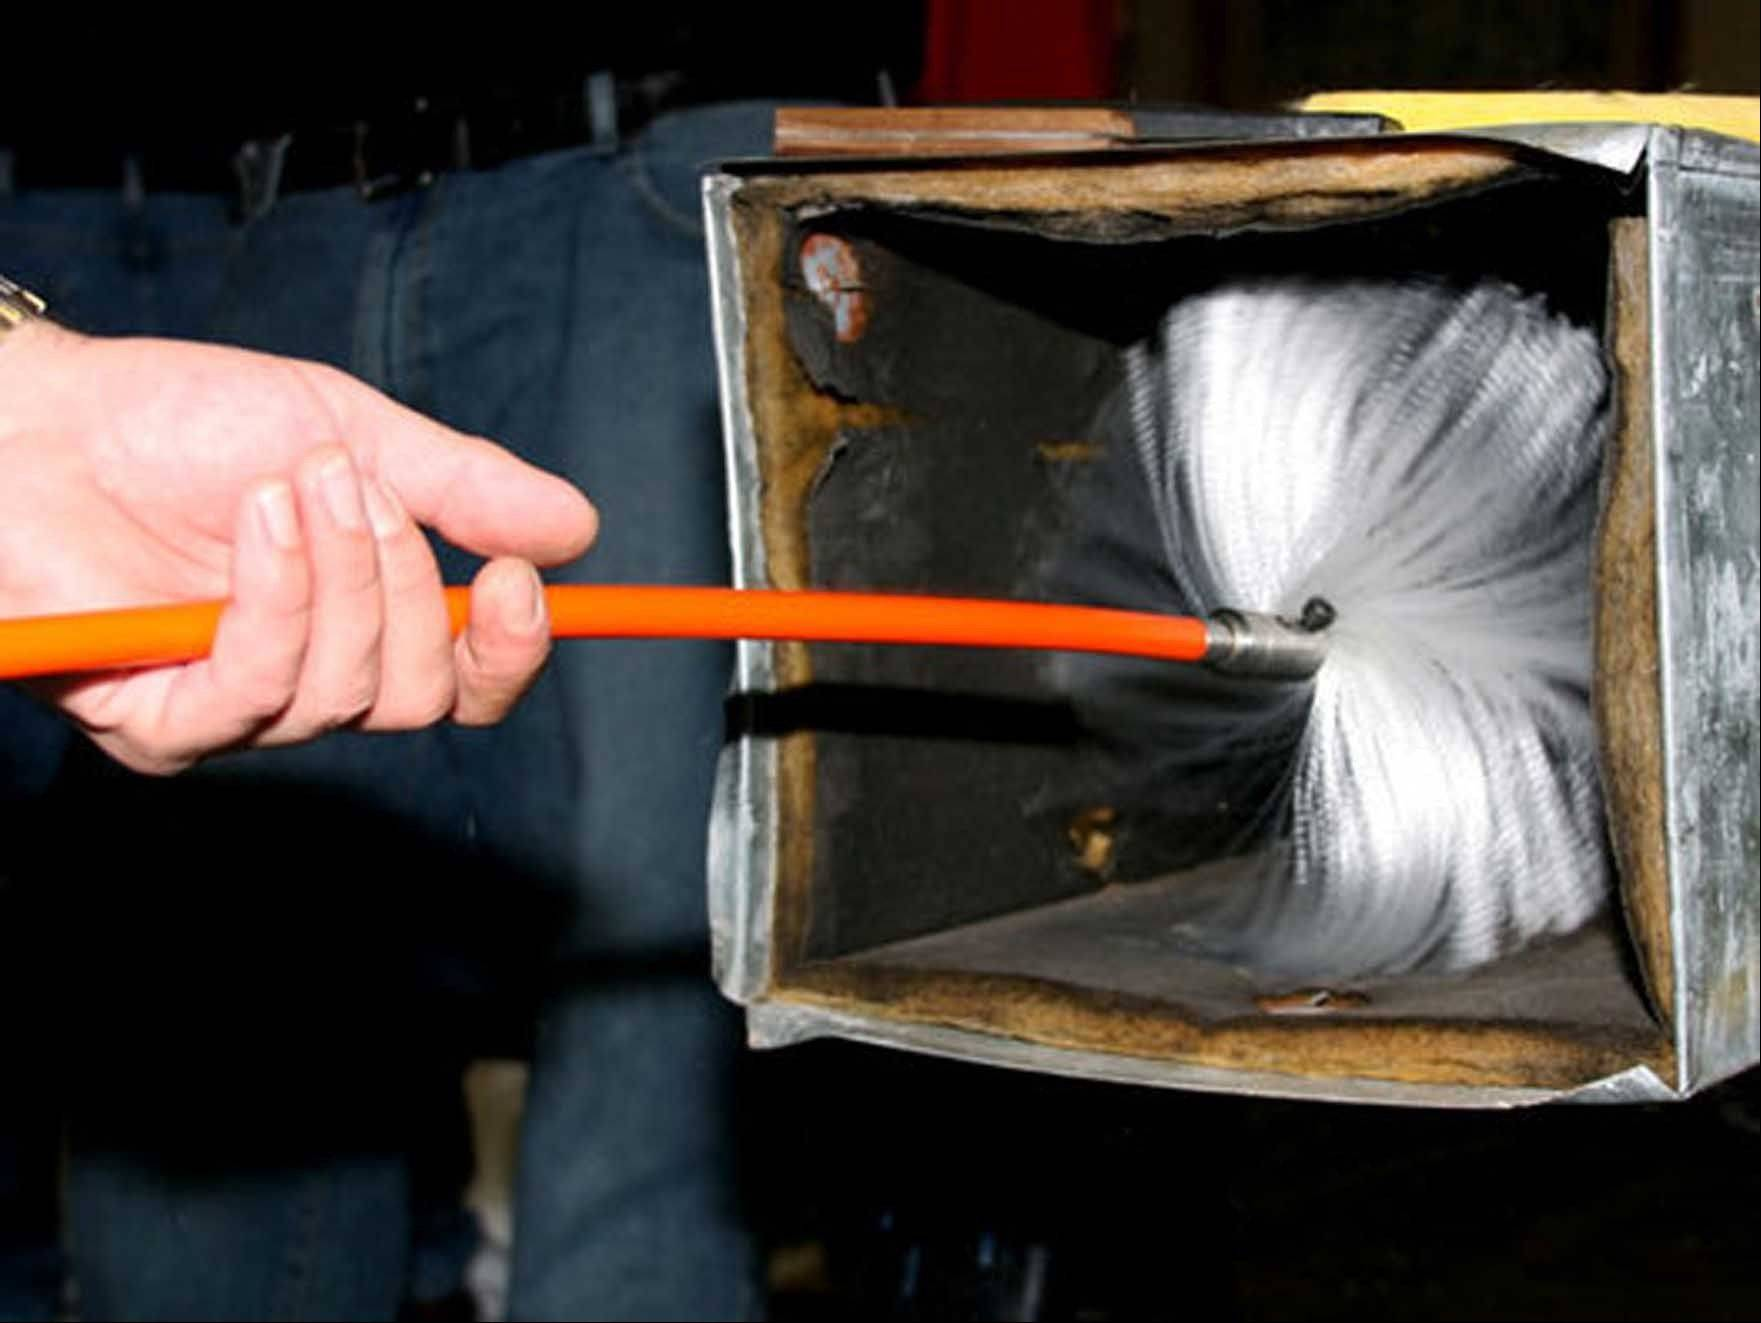 A technician uses a brush to clean ductwork. A typical cleaning costs $400 to $800.